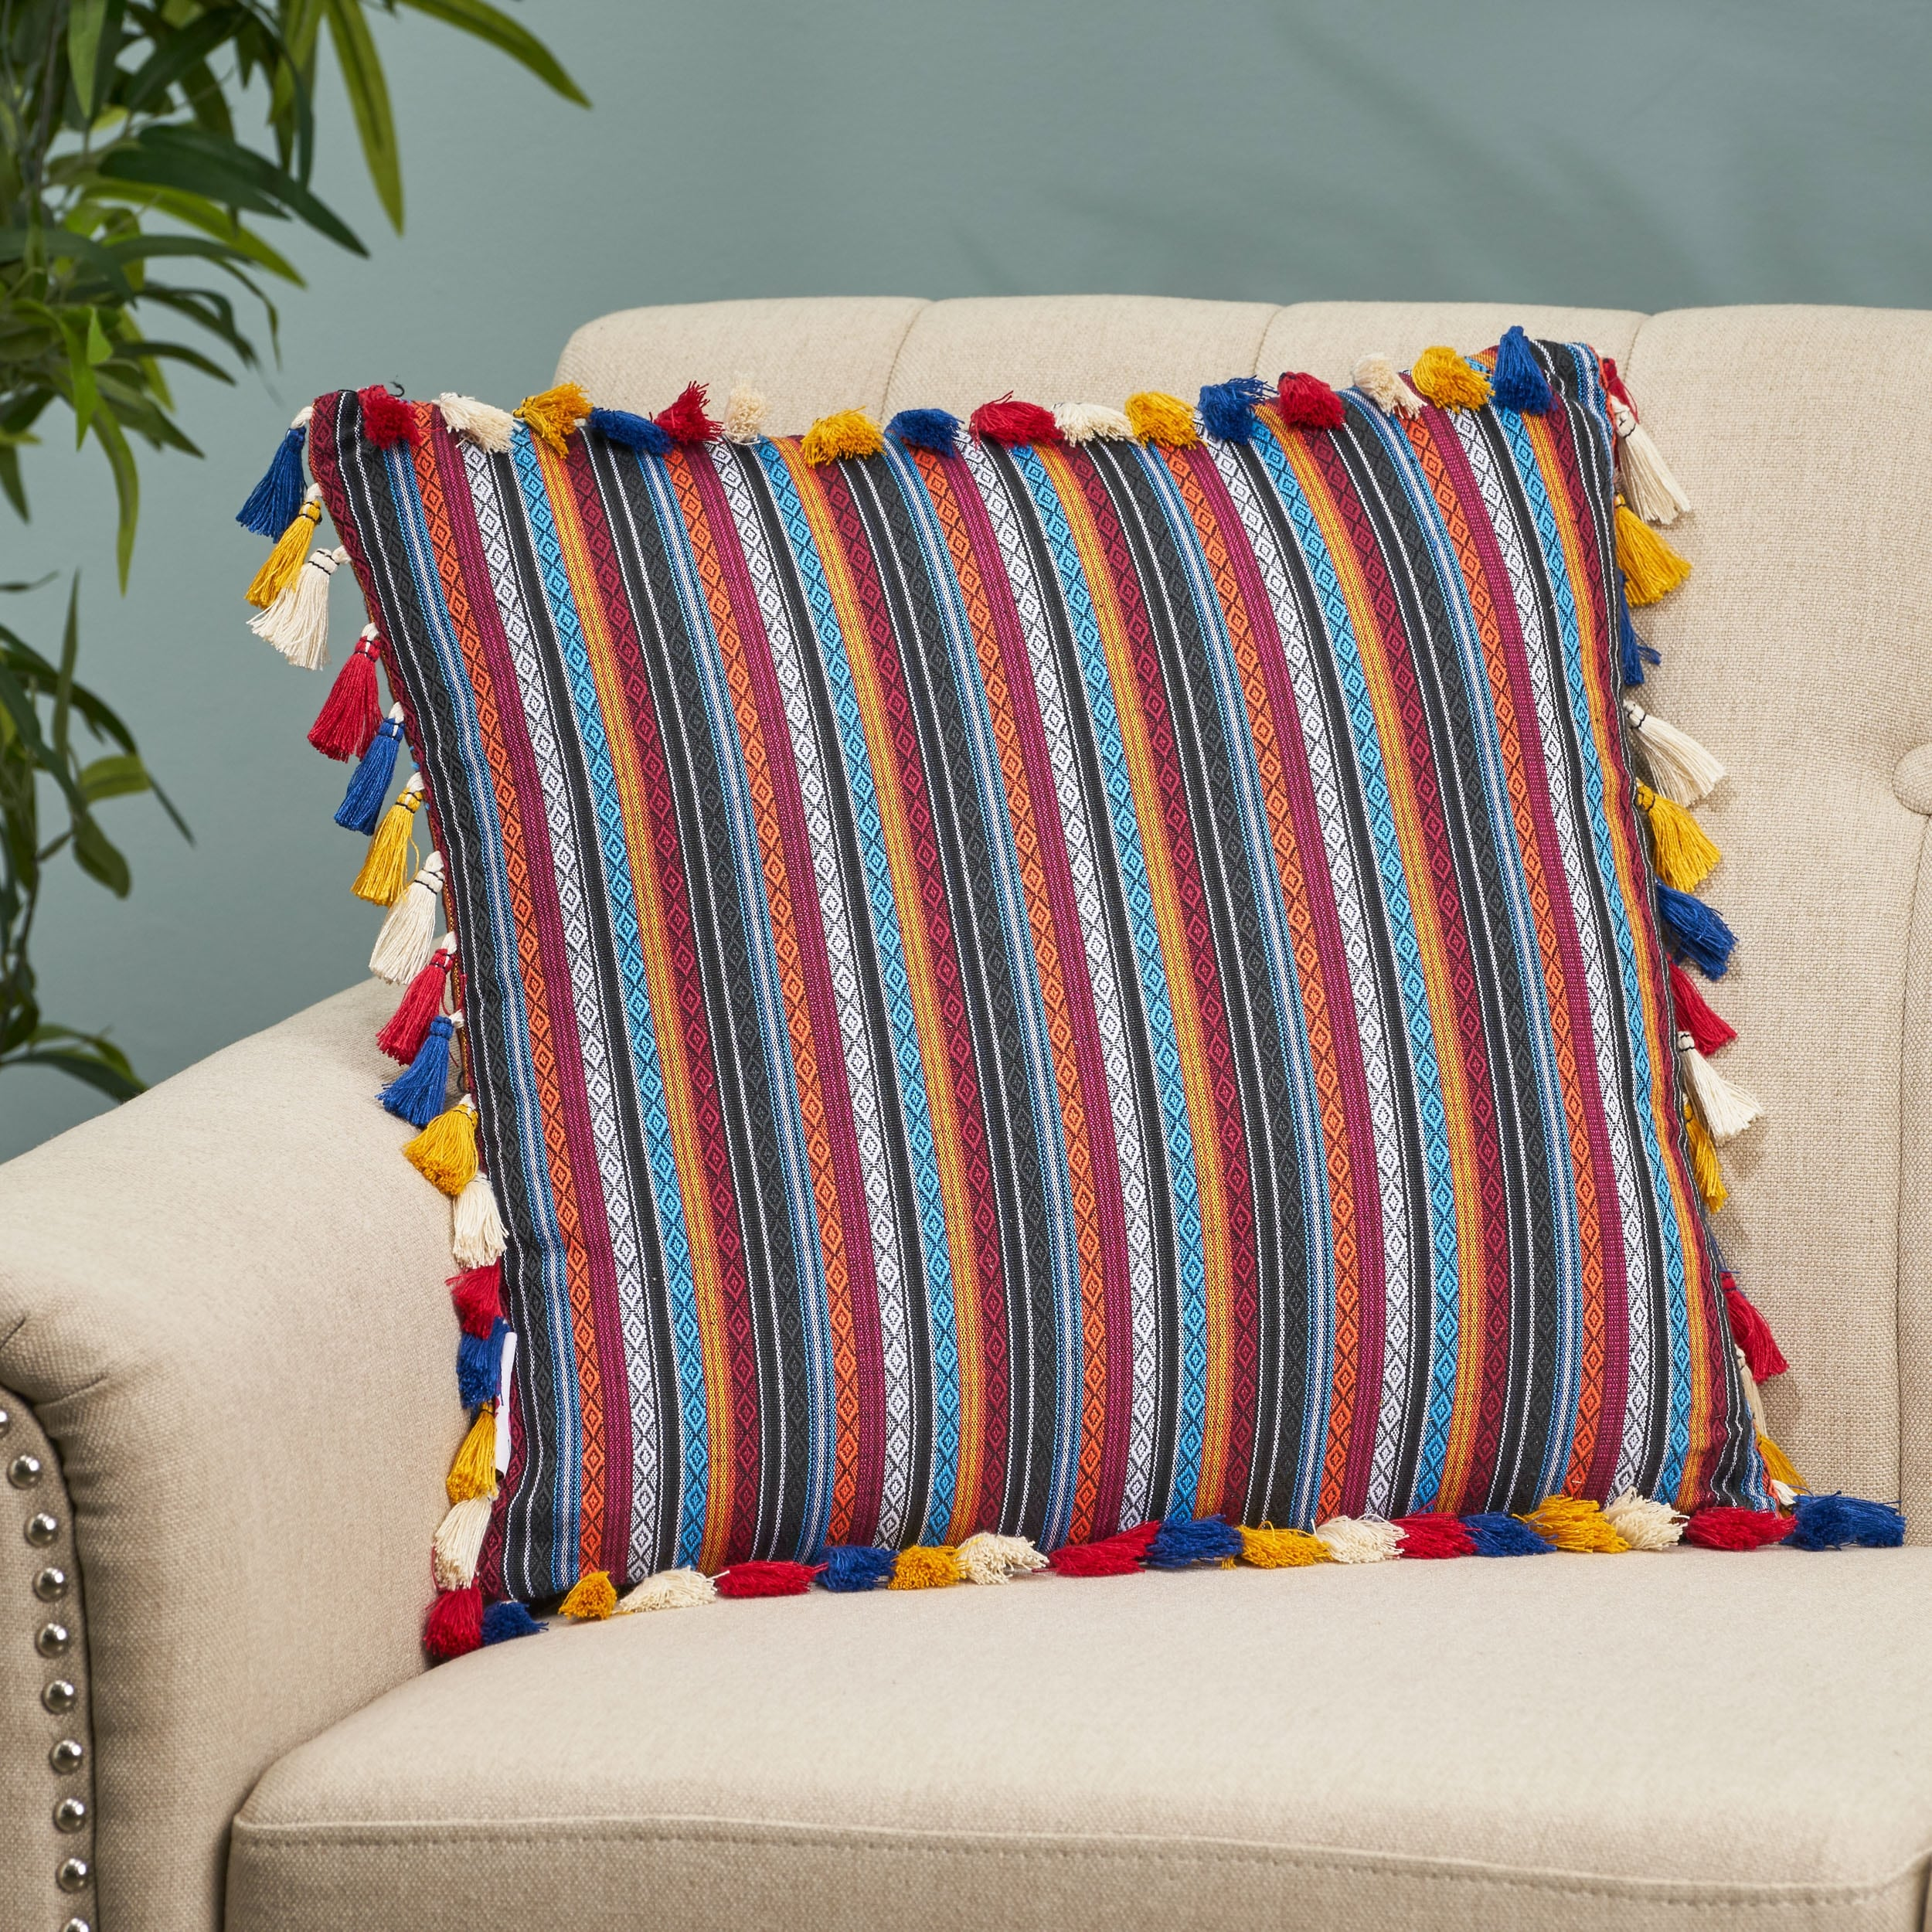 Shop For Barrington Modern Fabric Throw Pillow Cover By Christopher Knight Home Get Free Shipping On Everything At Overstock Your Online Home Decor Outlet Store Get 5 In Rewards With Club O 28807628